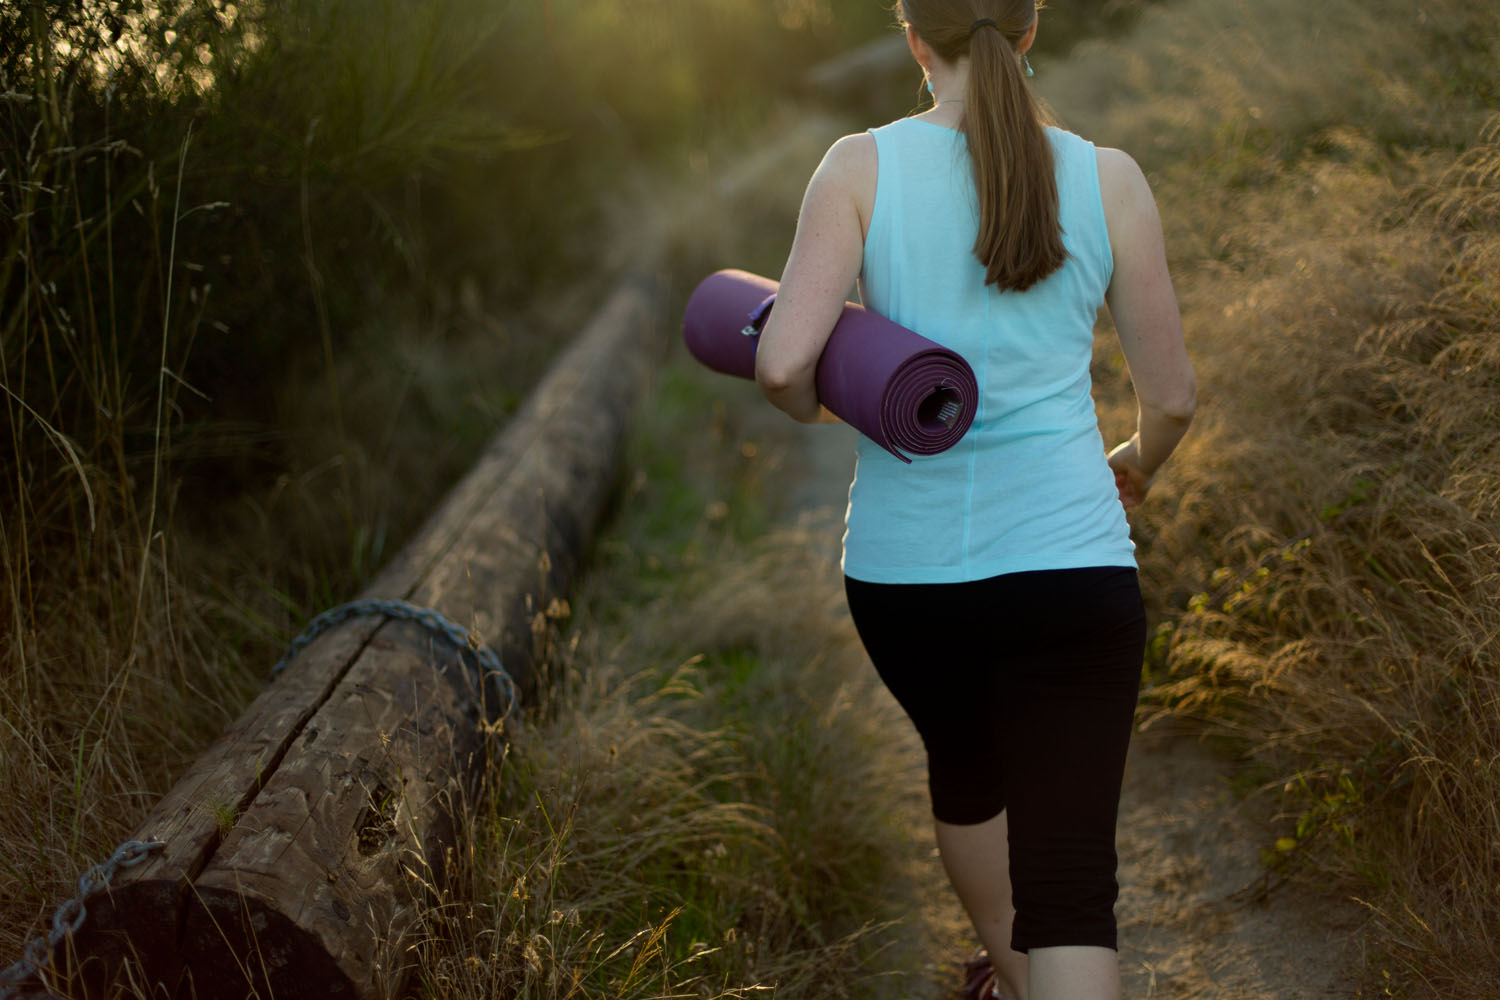 Lifestyle: Darcey Miller walking to practice yoga at Discovery Park, Seattle